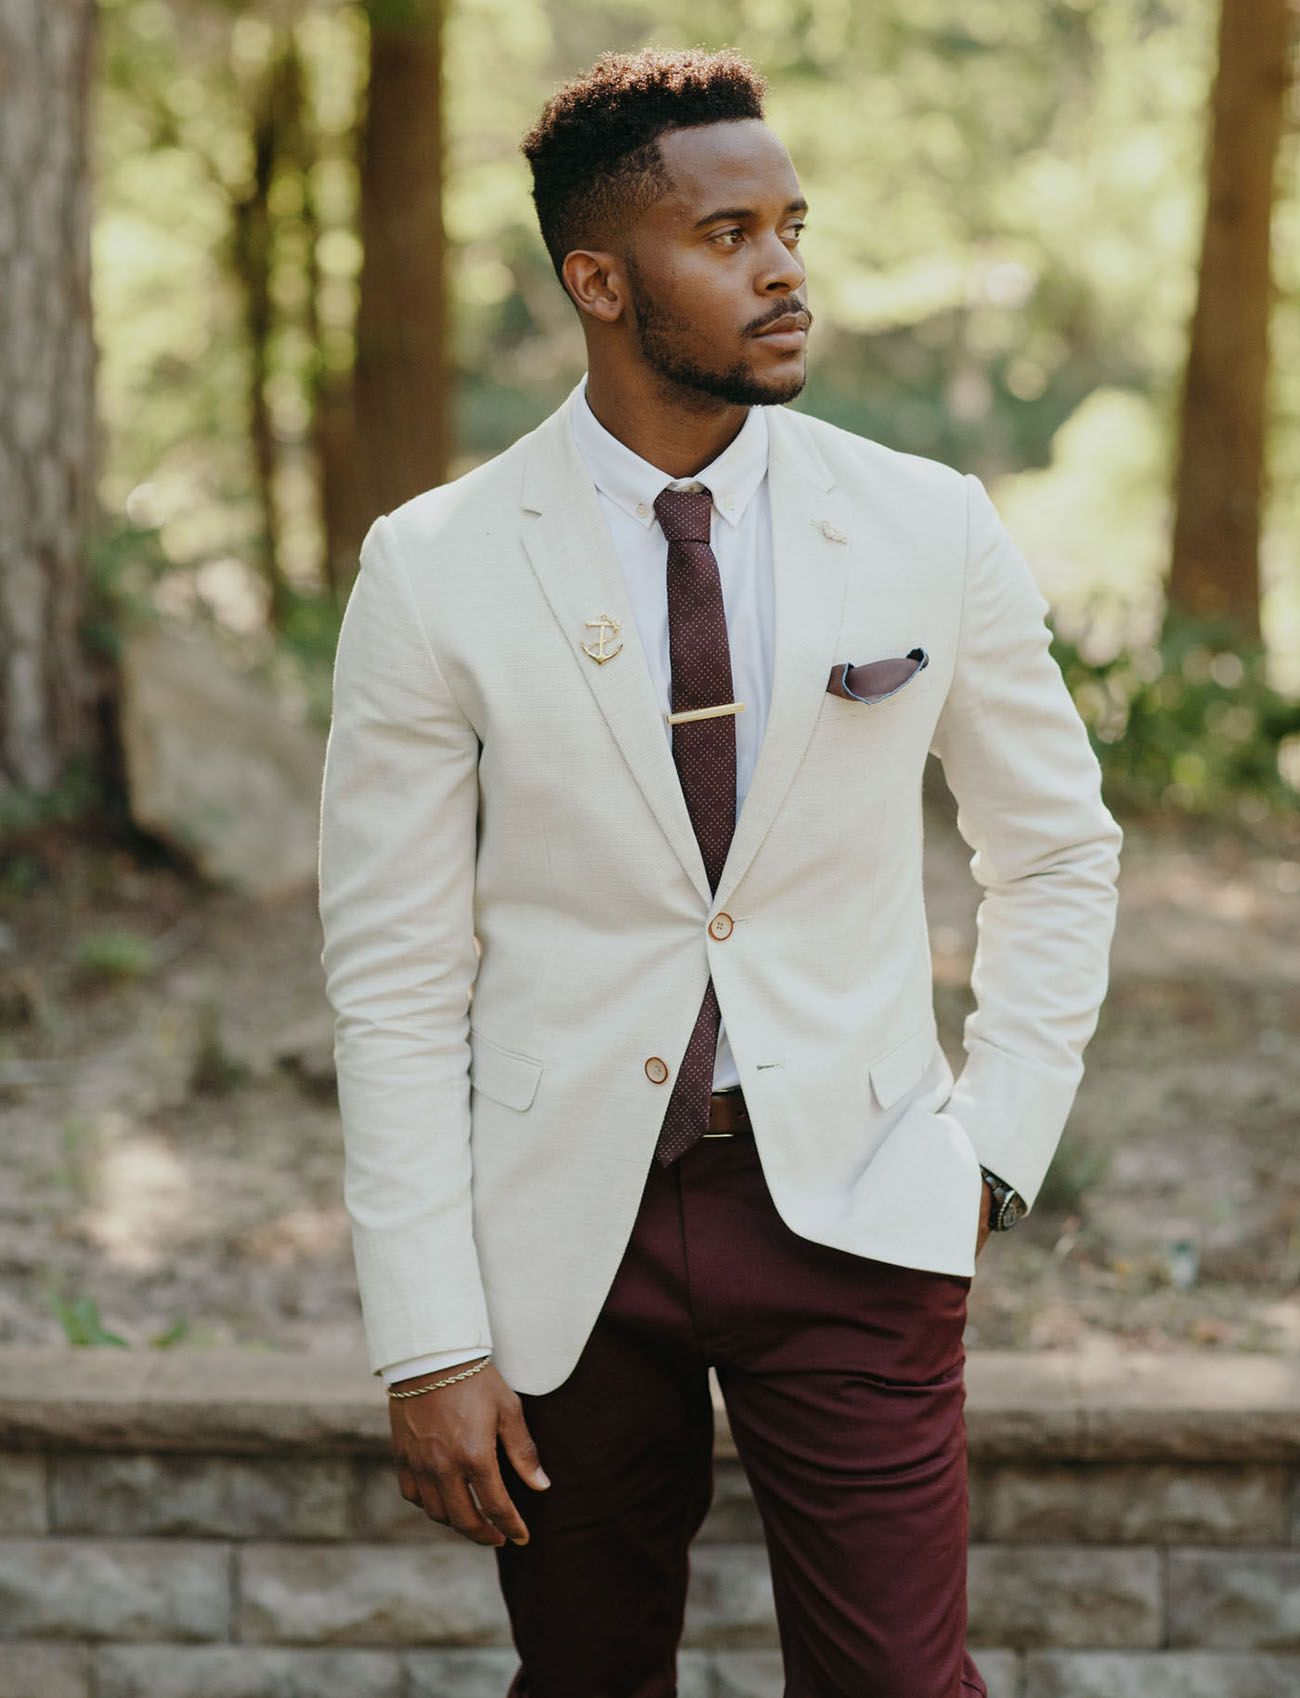 Burgundy   Cream Rustic Chic Texas Wedding | Burgundy pants, Cream ...